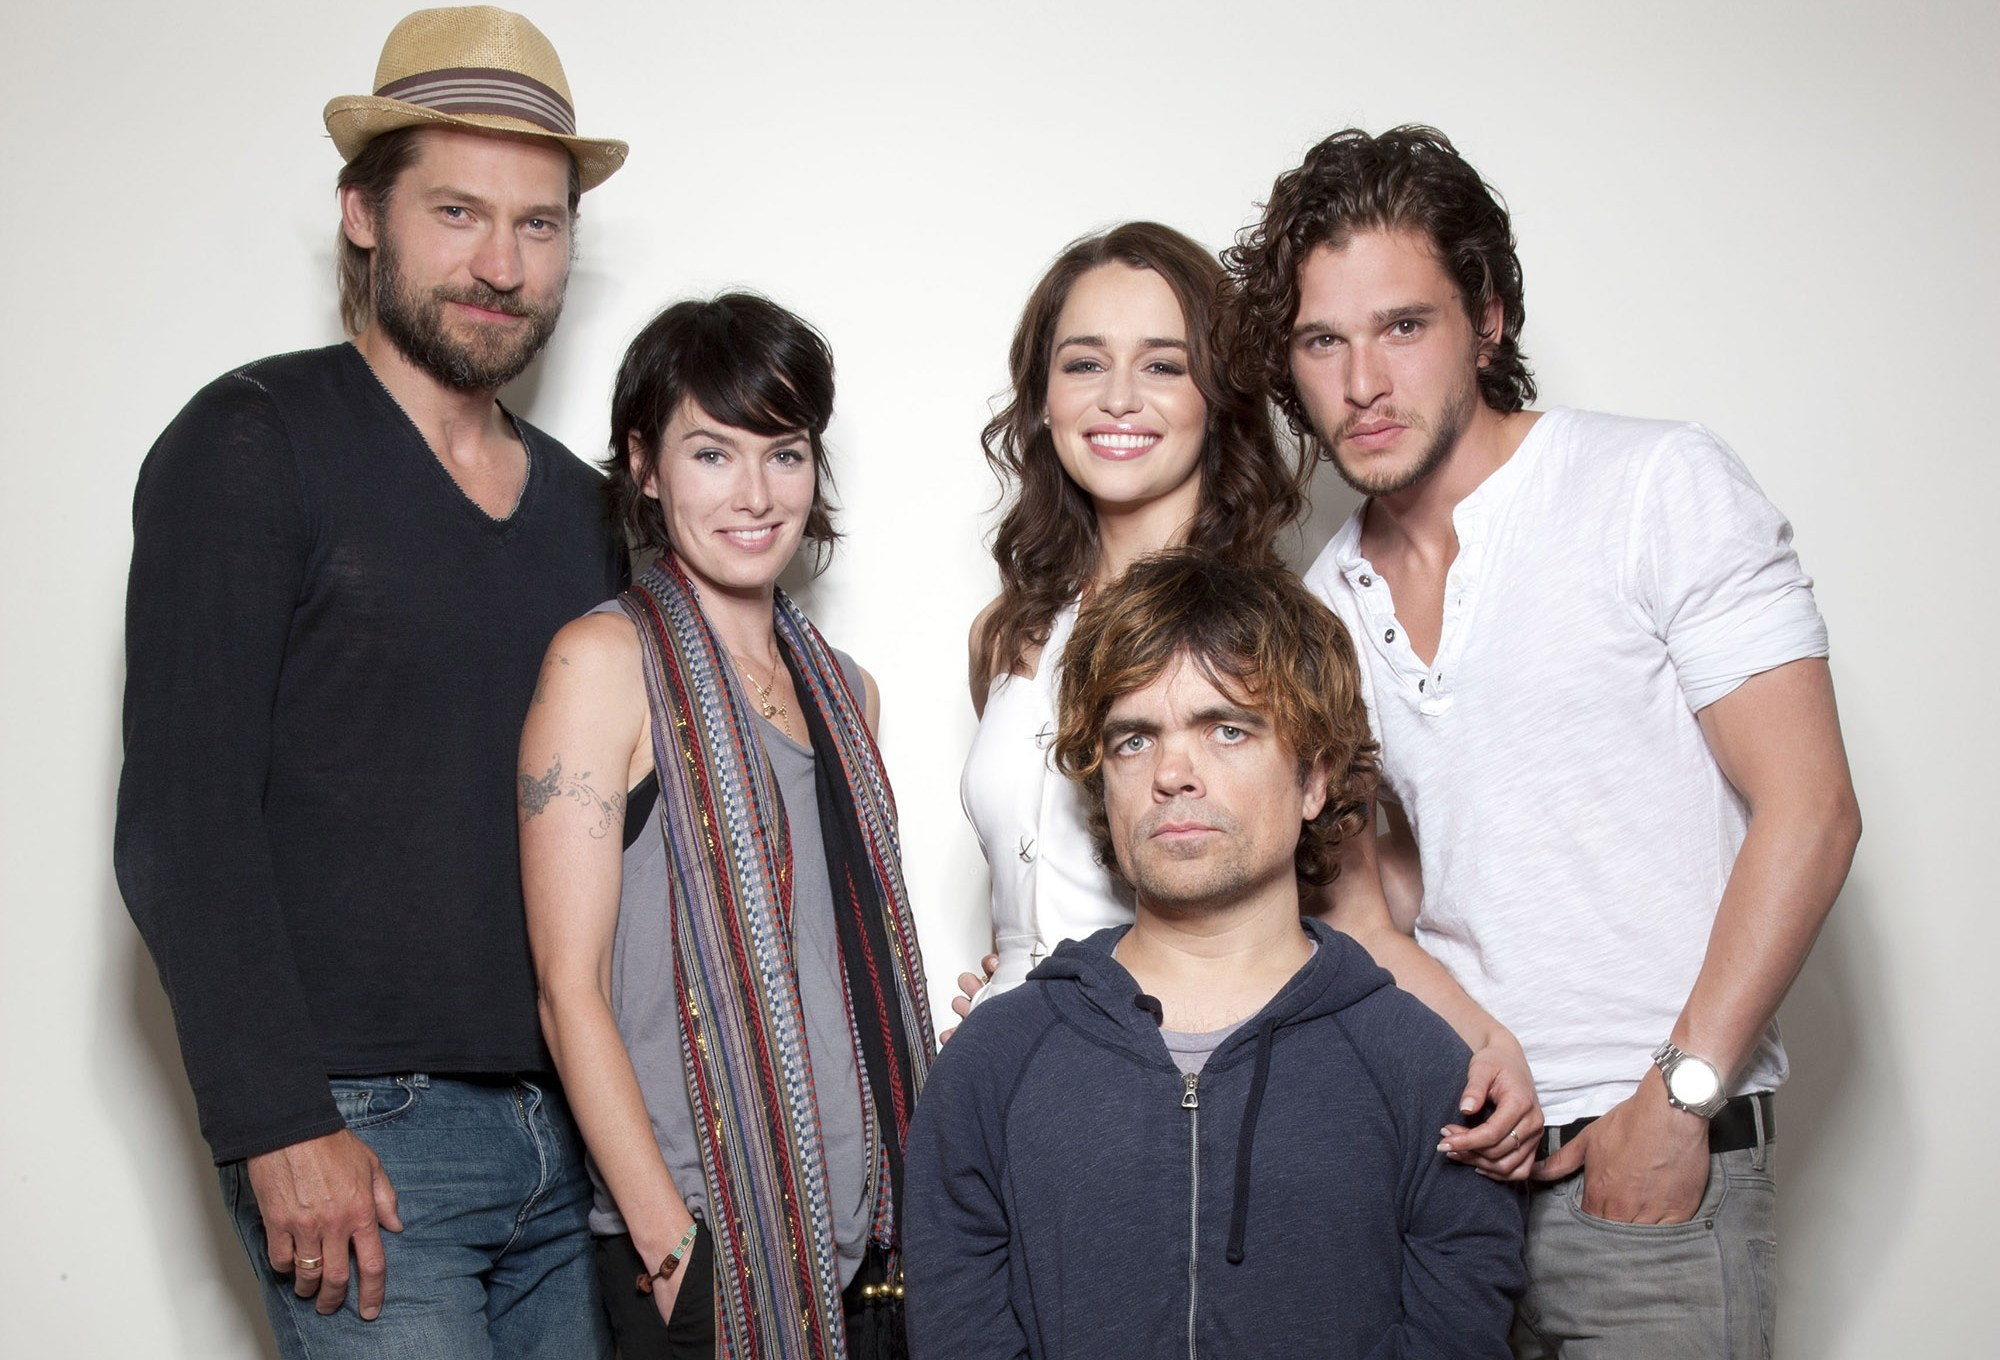 Emilia Clarke, Kit Harrington, Lena Headey, Nikolaj Coster-Waldau & Peter Dinklage by Jason O'Dell at the 2011 Comic-Con